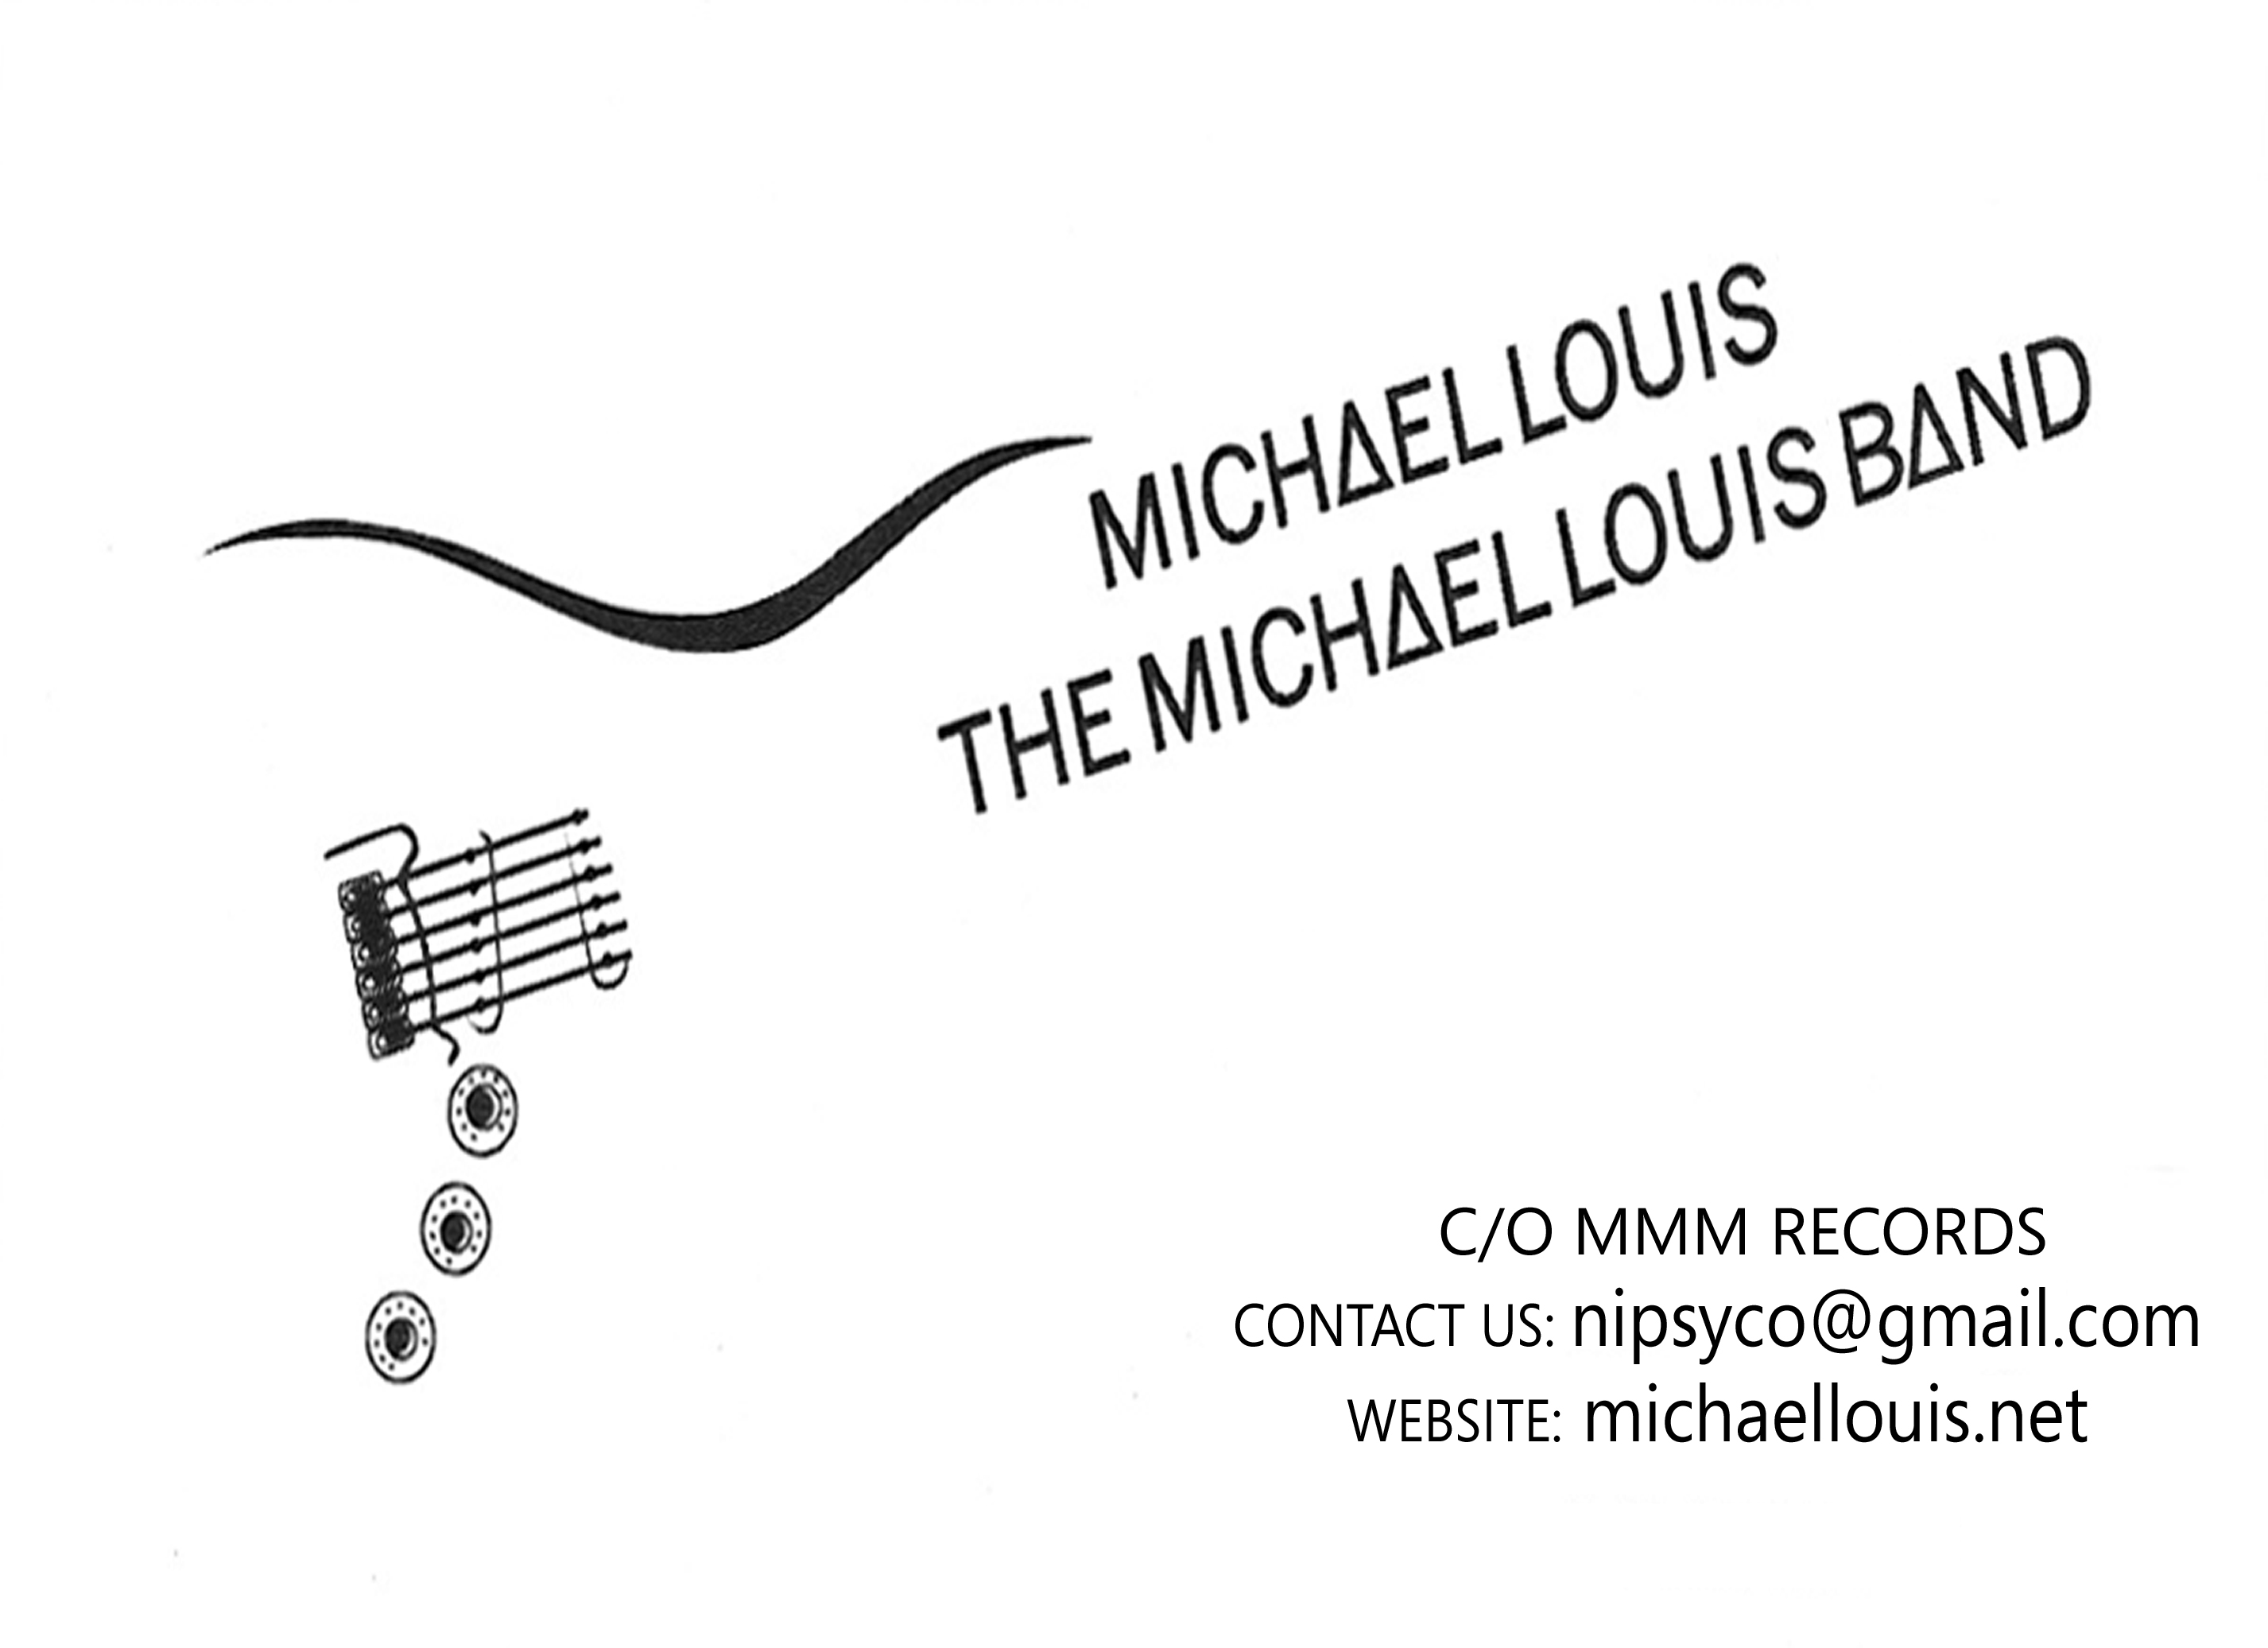 ML & TMLB BIZ CARD LA DESIGN EMAIL & WEBSITE ONLY